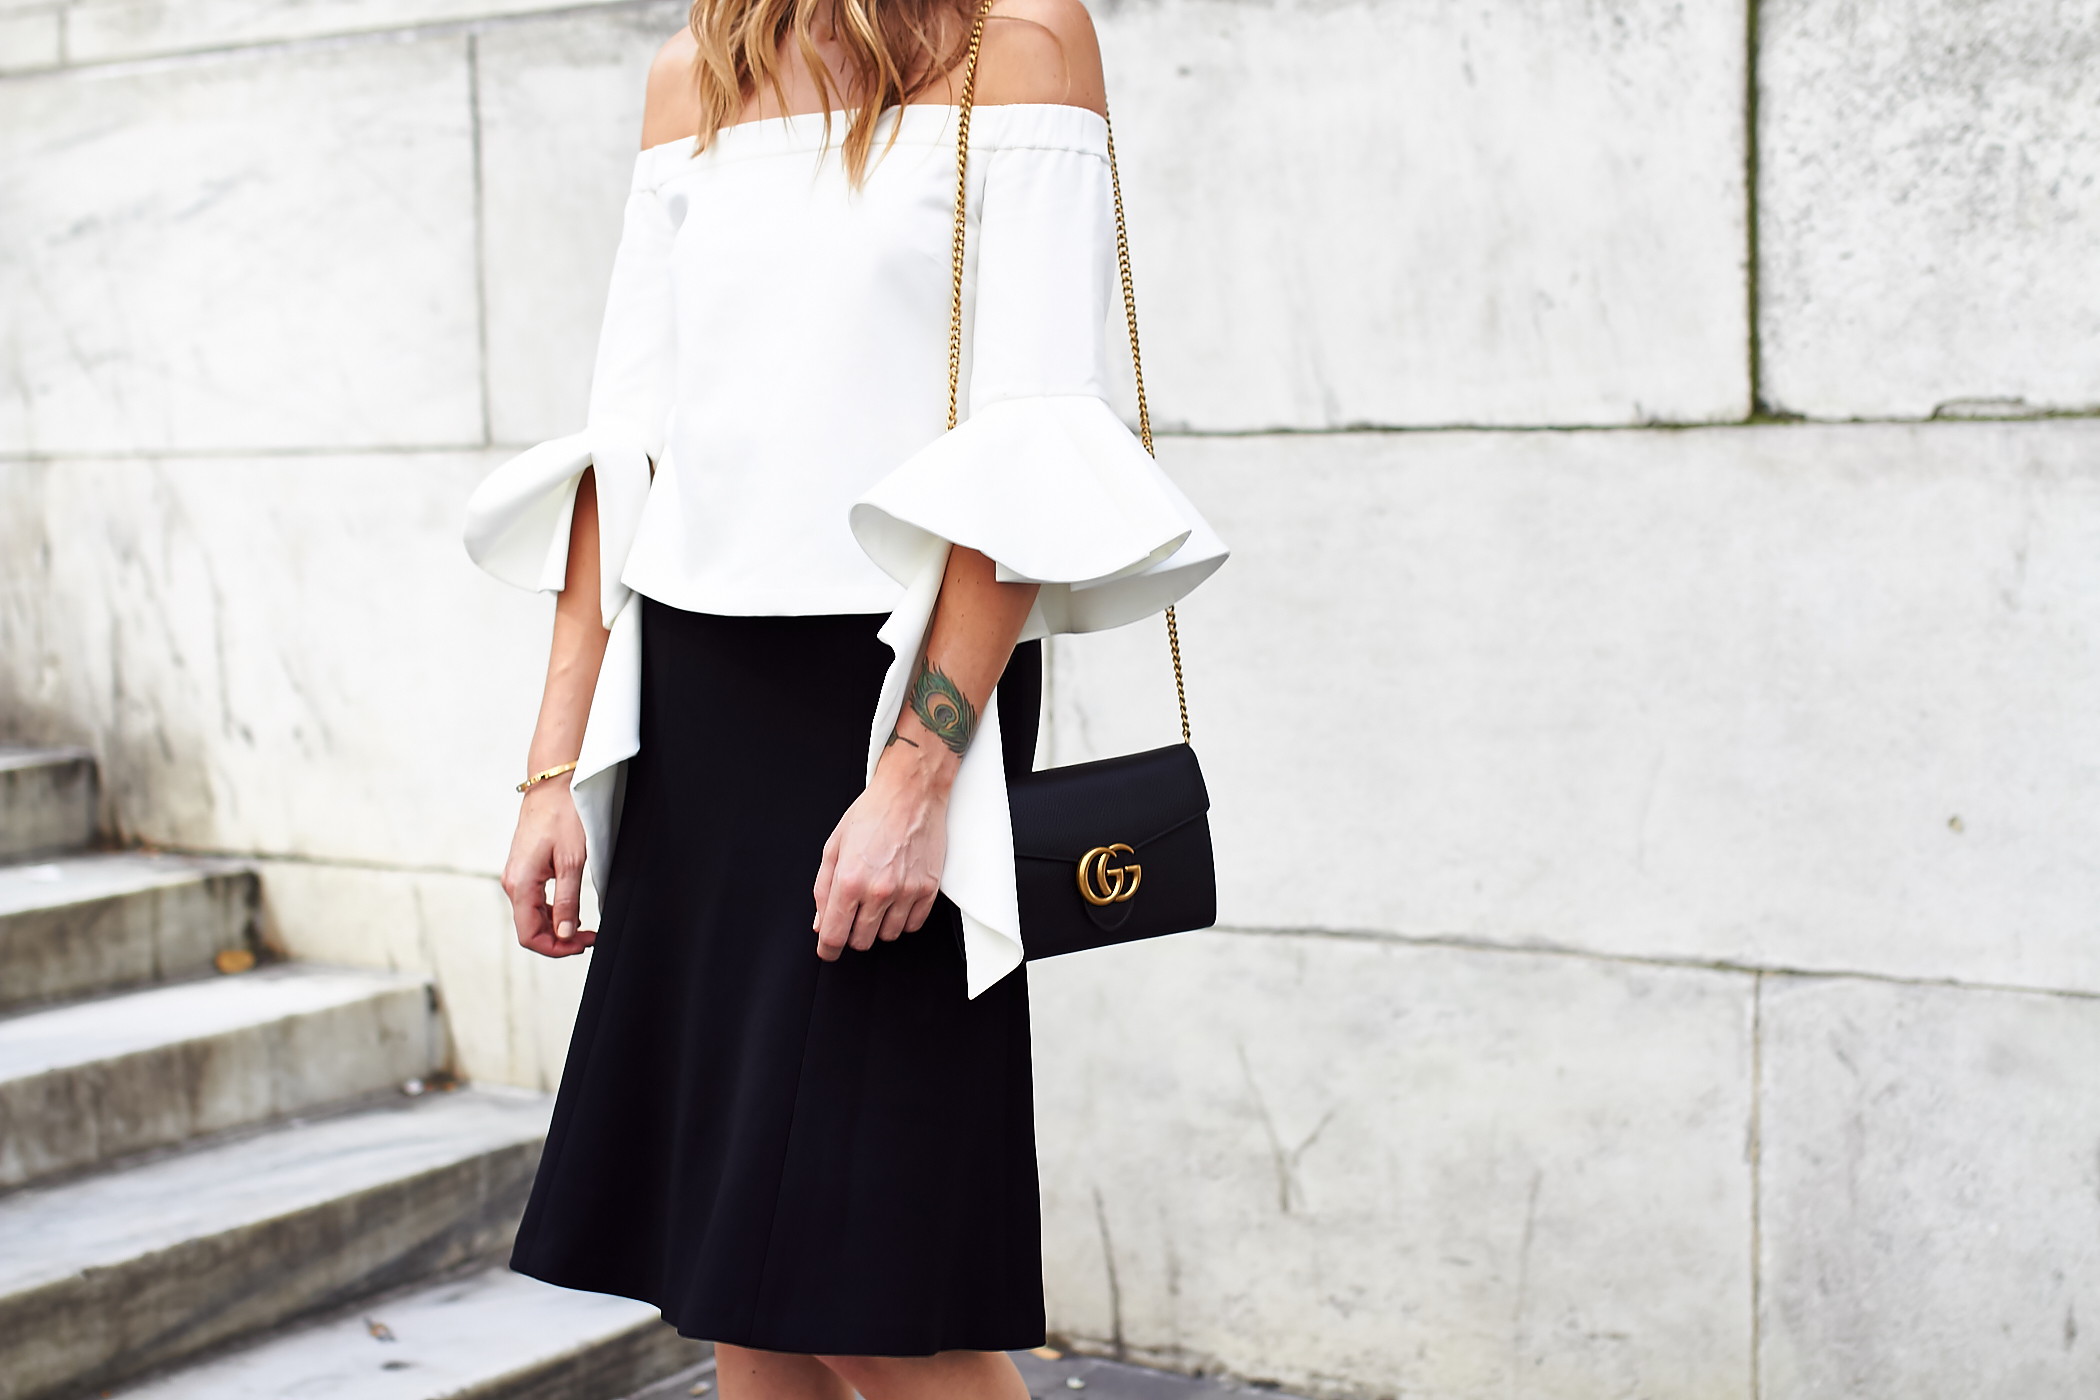 fashion-jackson-white-ruffle-off-the-shoulder-top-black-midi-skirt-gucci-marmont-handbag